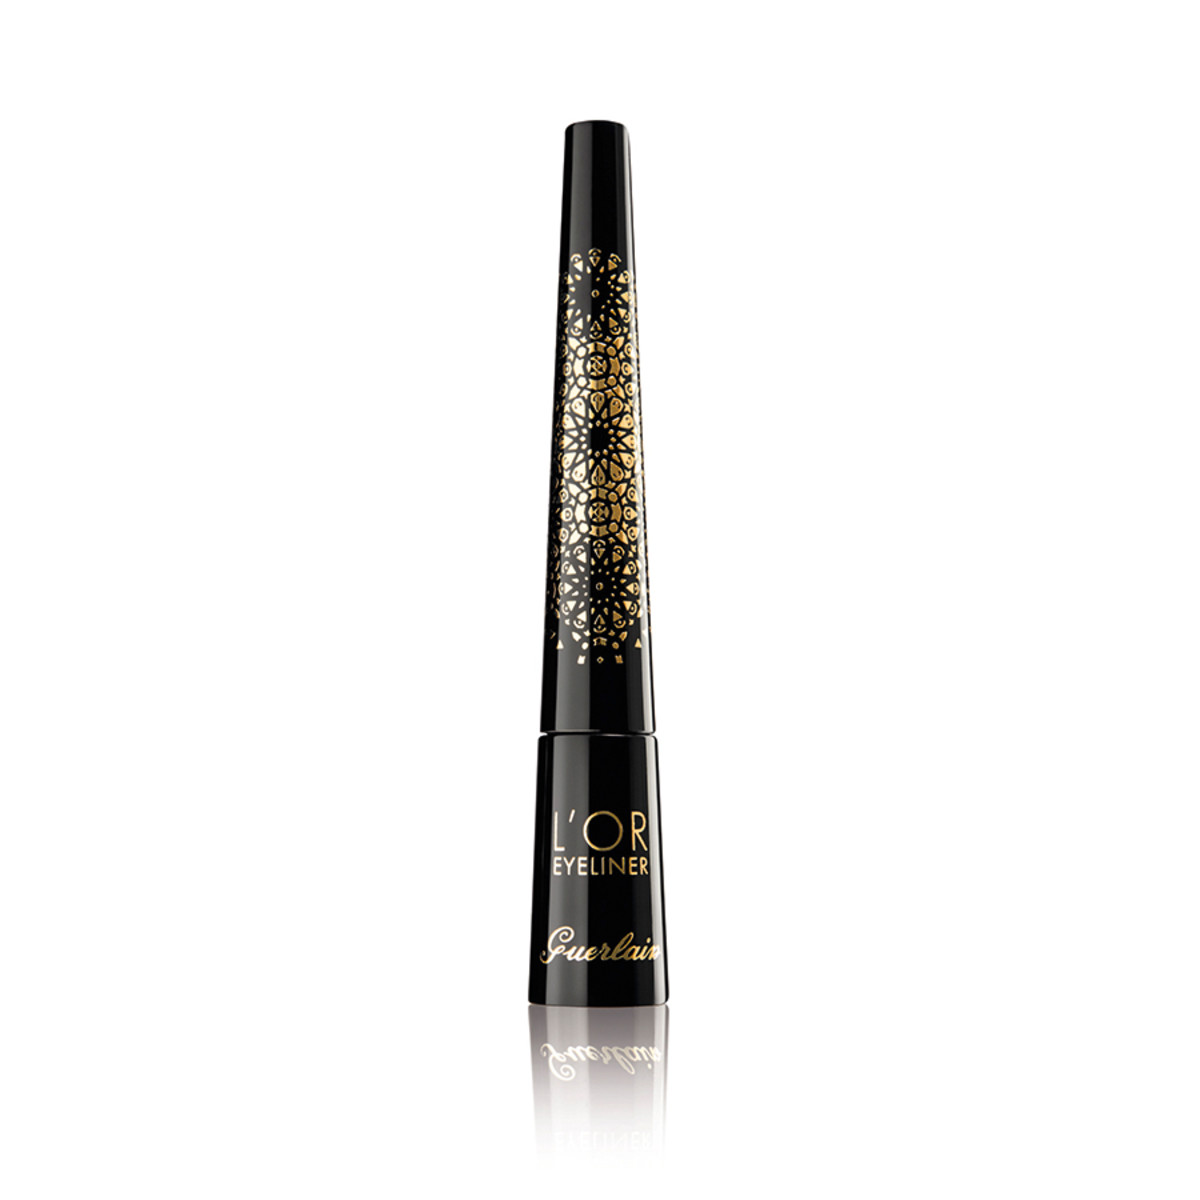 Guerlain holiday 2016 L'Or Sparkling Gold Eyeliner